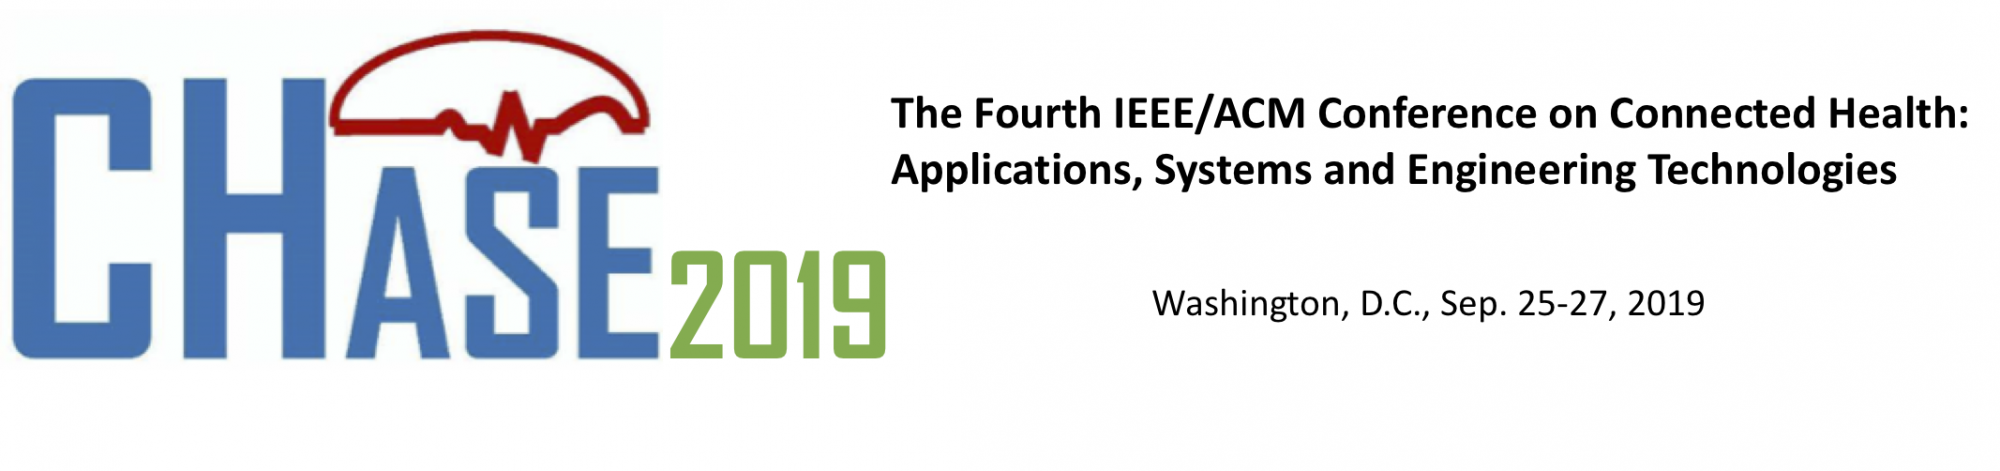 A paper was accepted to 2019 IEEE/ACM Conference on Connected Health (CHASE)